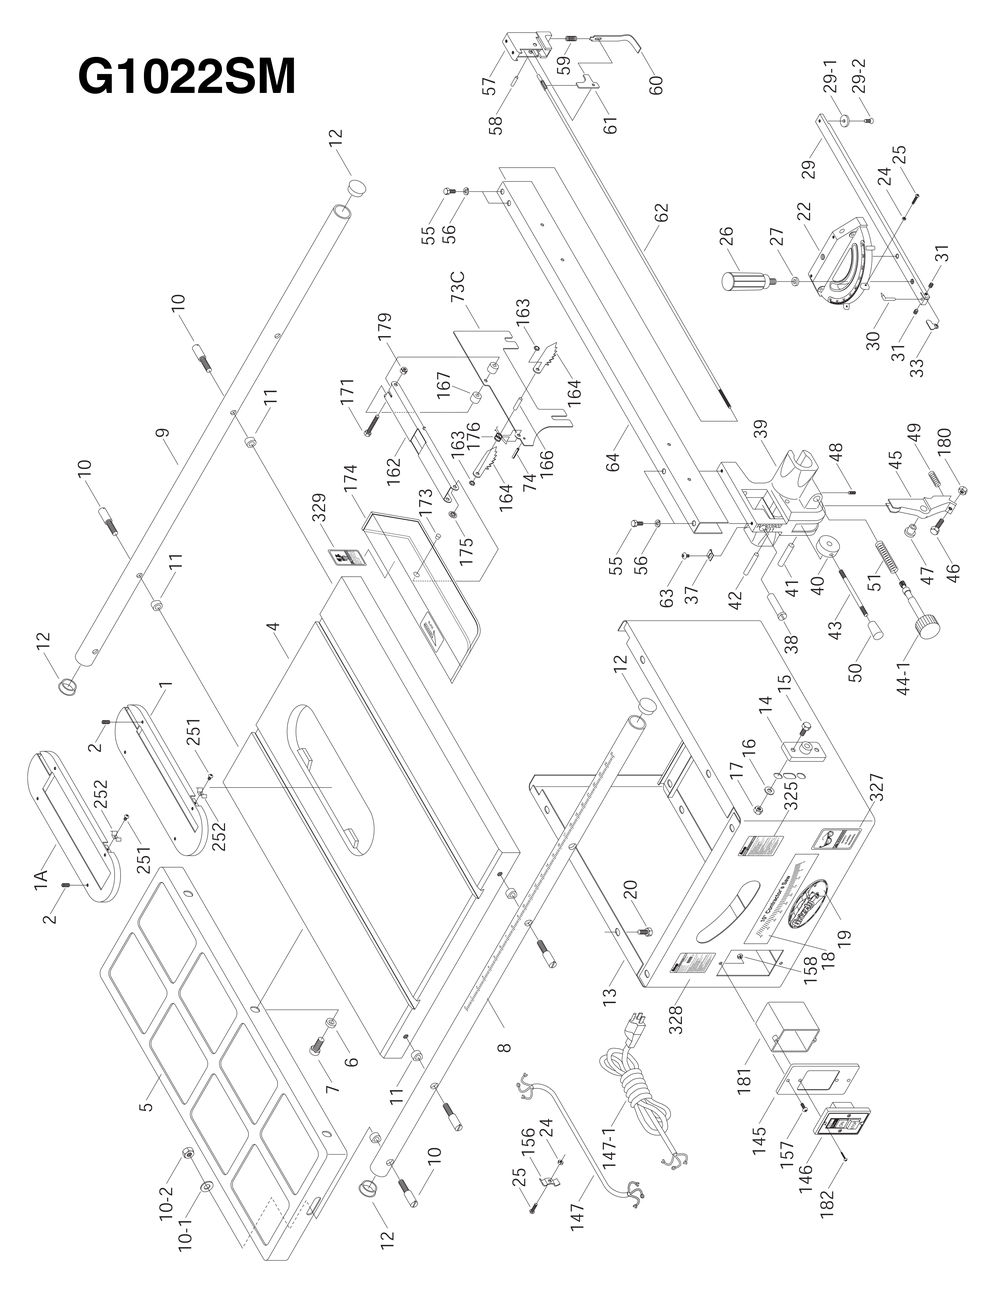 Grizzly table saw wiring diagram wiring data shop tools and machinery at grizzly com black decker table saw parts grizzly table saw wiring diagram greentooth Choice Image